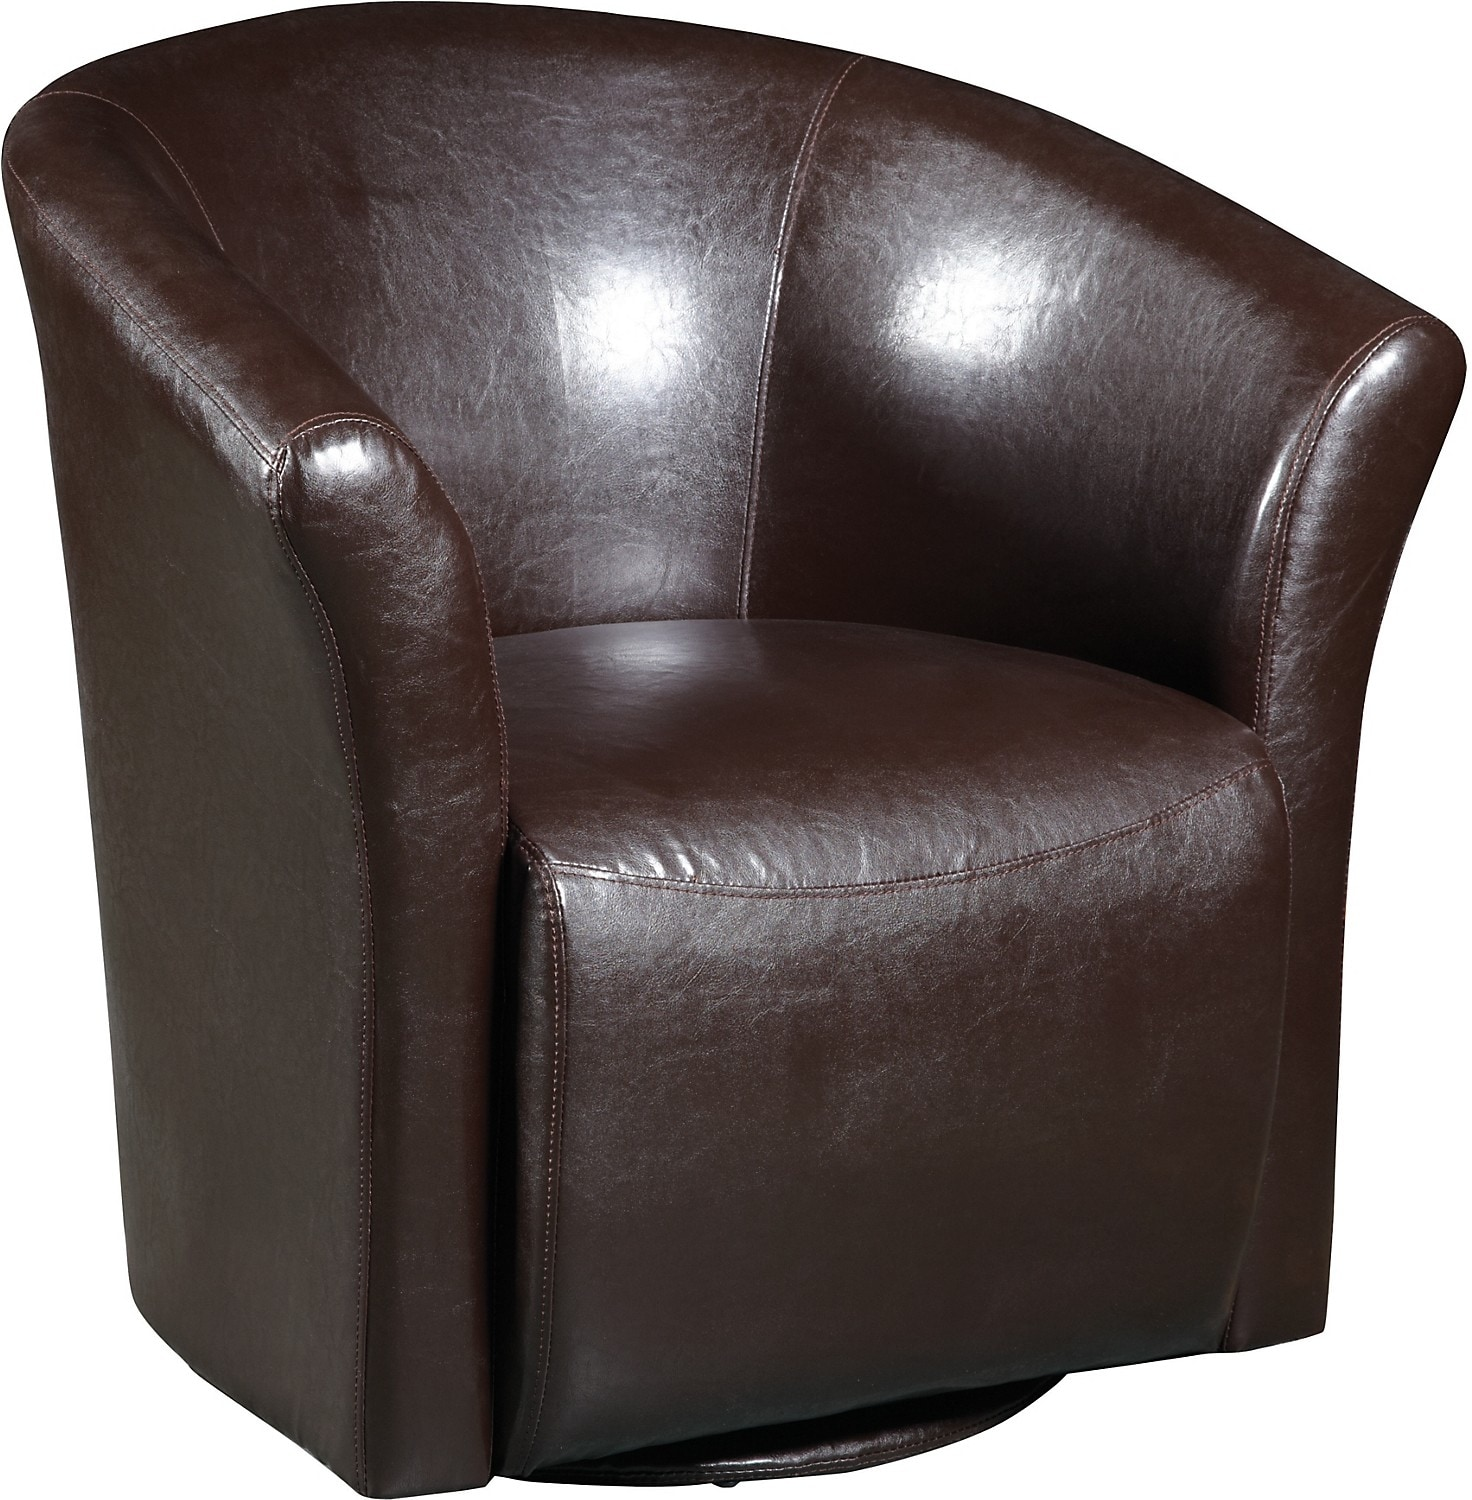 Brown Swivel Accent Chair The Brick